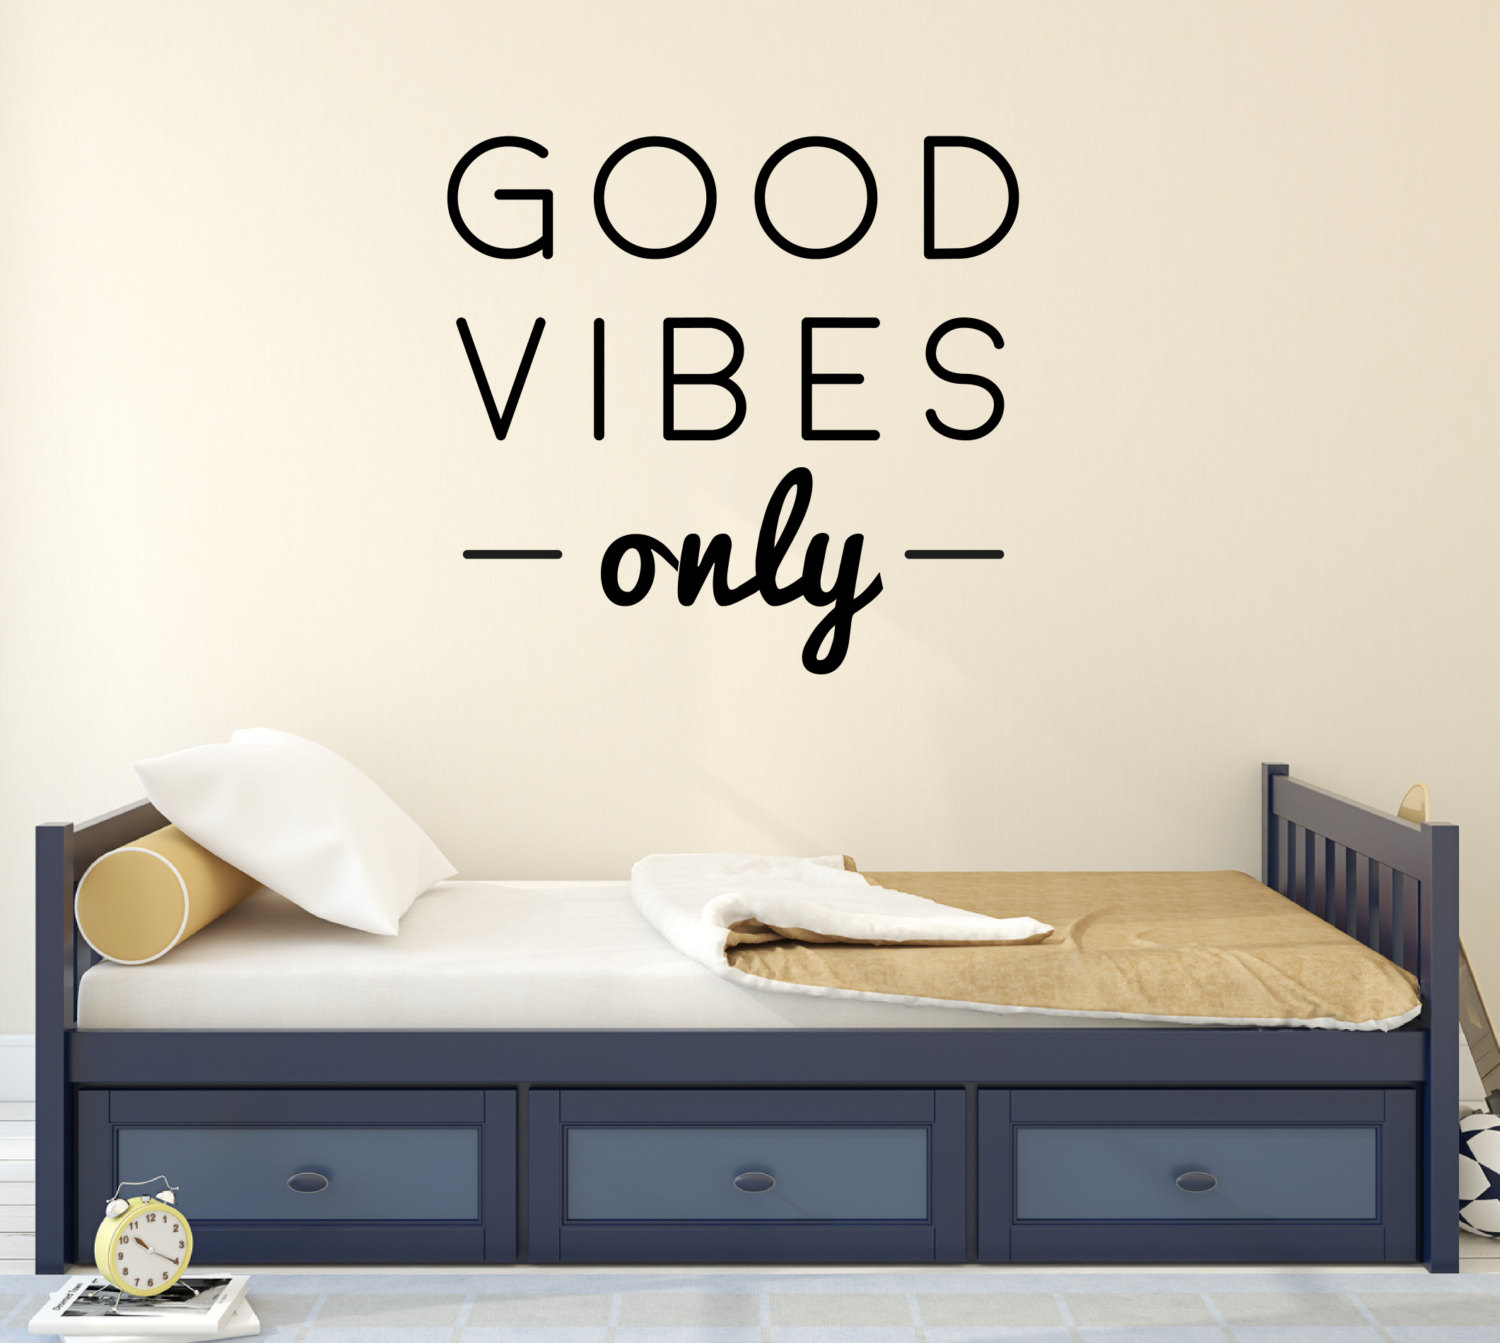 Good Vibes Only Wall Sticker Quote Wall Stickers Bedroom Wall Stickers Urban Artwork